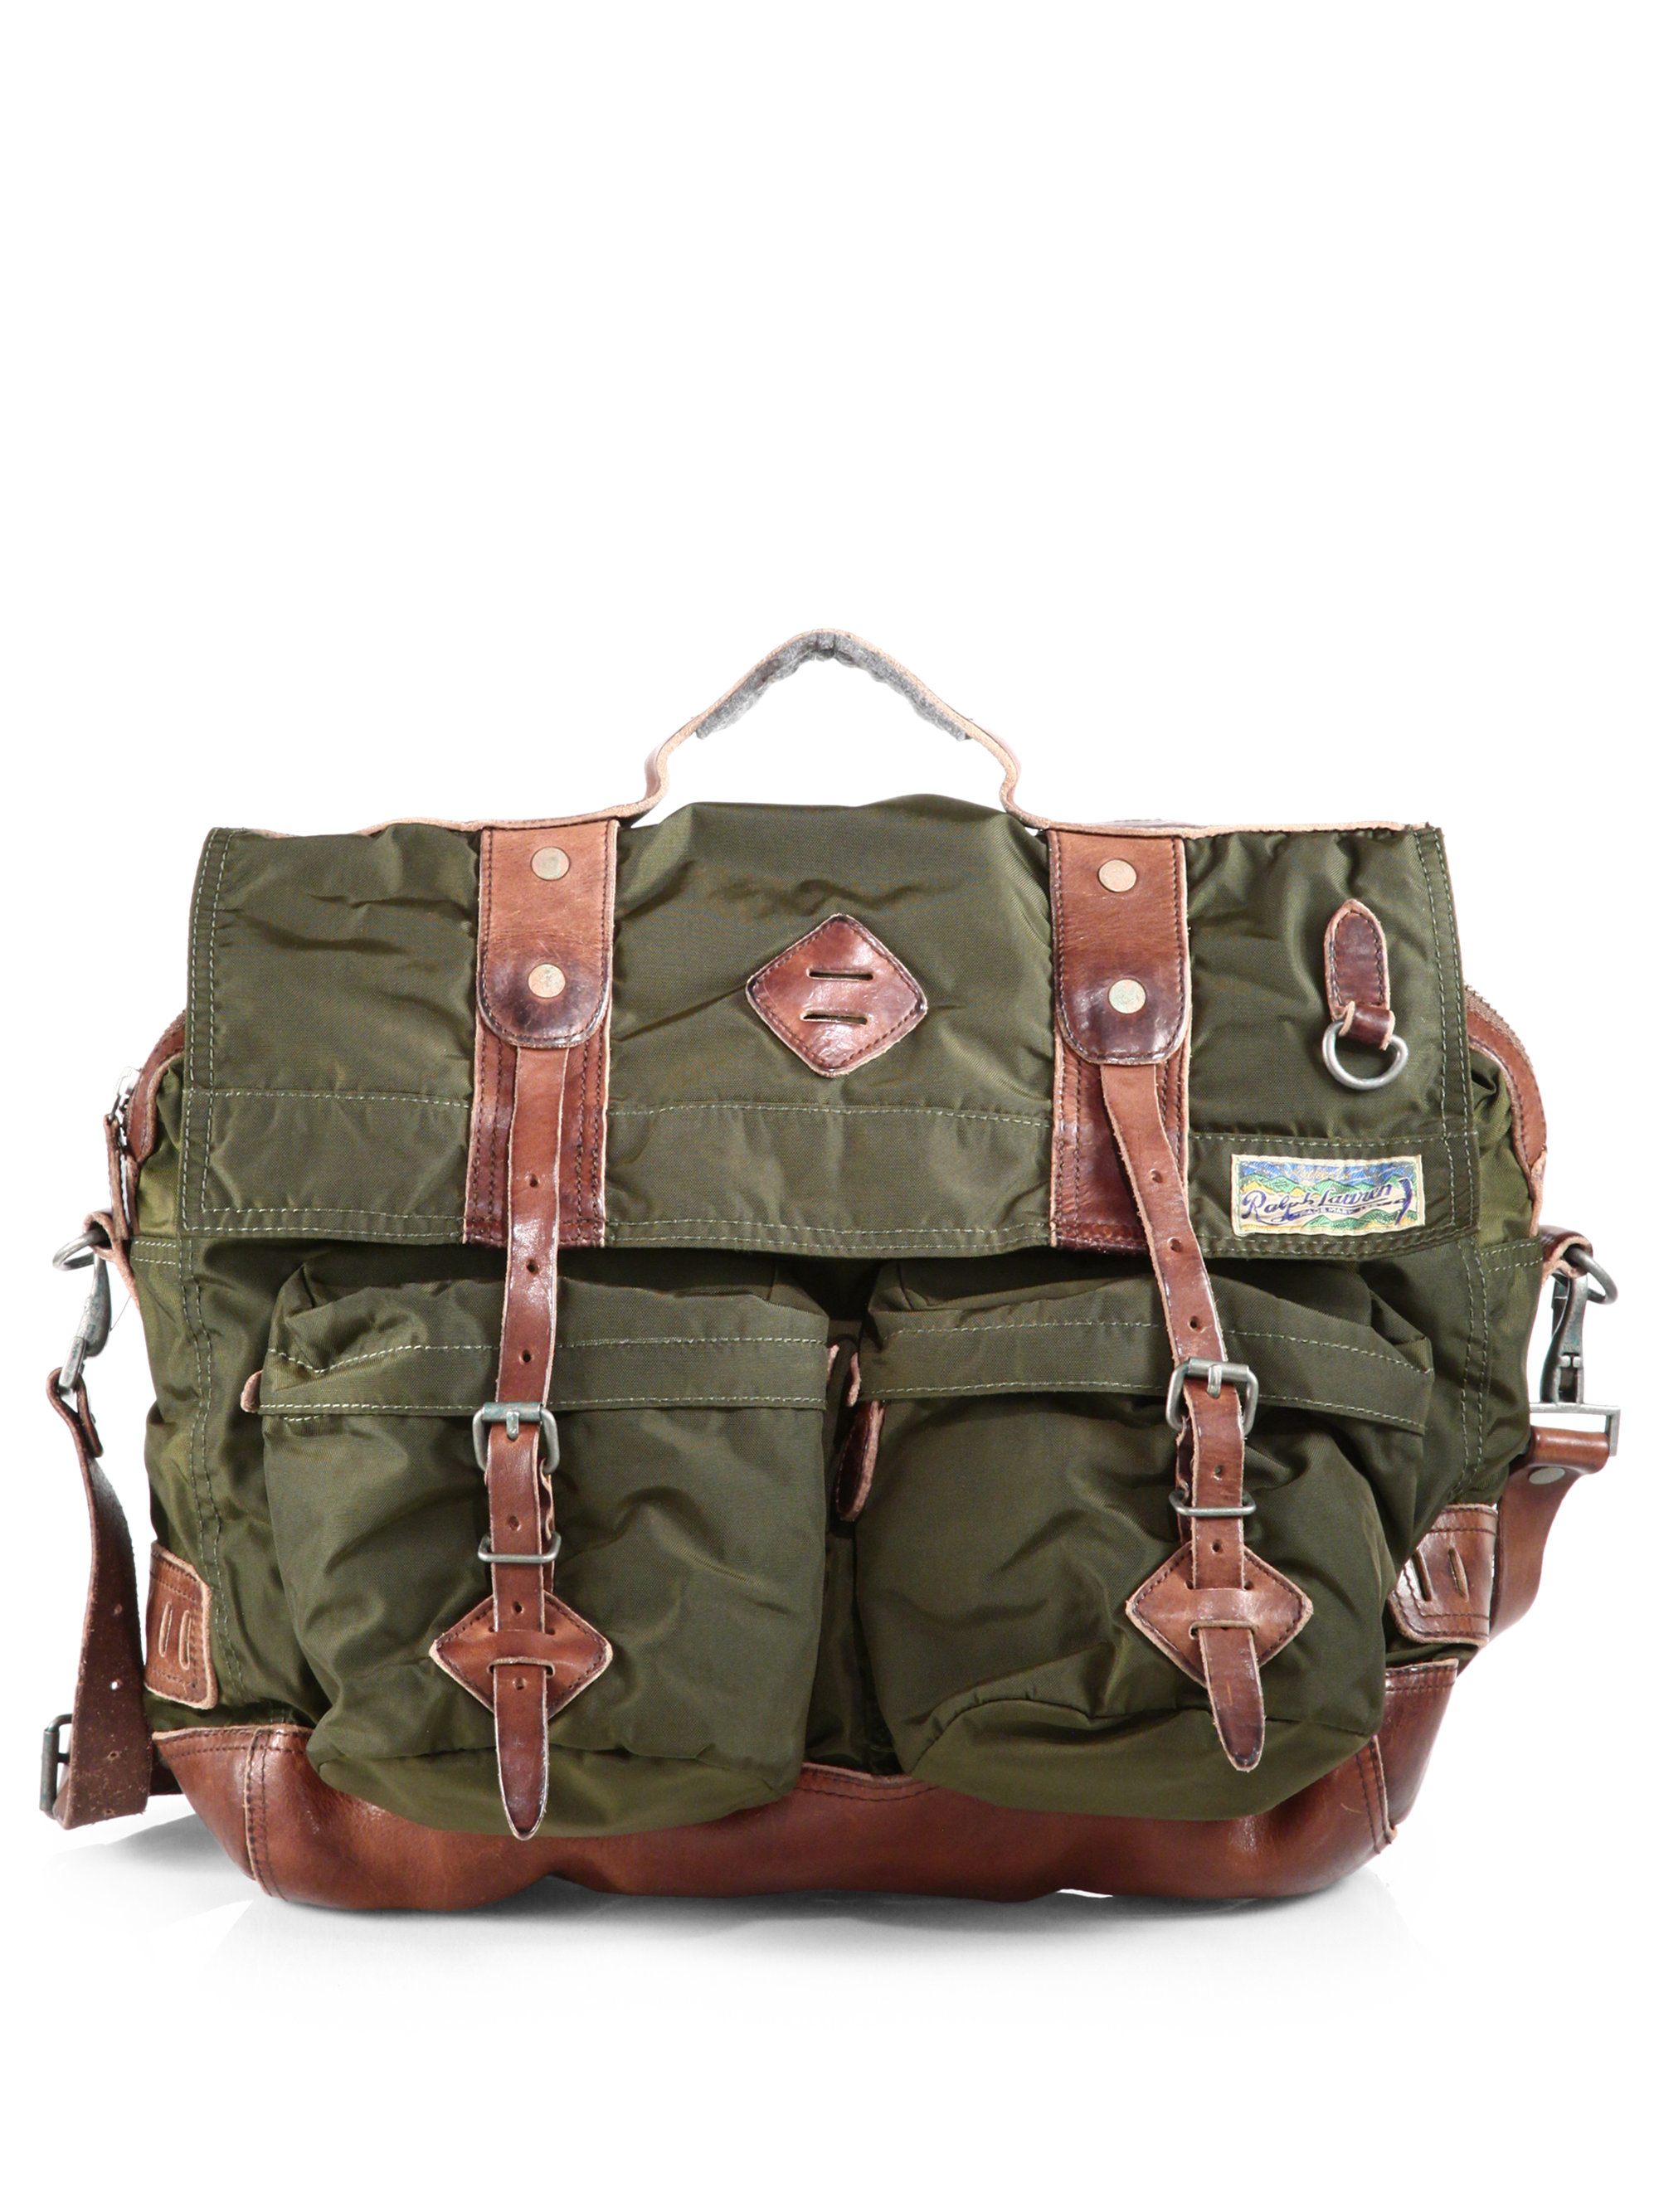 ffaa0ca2b9 ... canvas and leather messenger bag lyst 8d5df e491c  discount code for lyst  polo ralph lauren yosemite messenger in green for men 6d1f4 2a40b